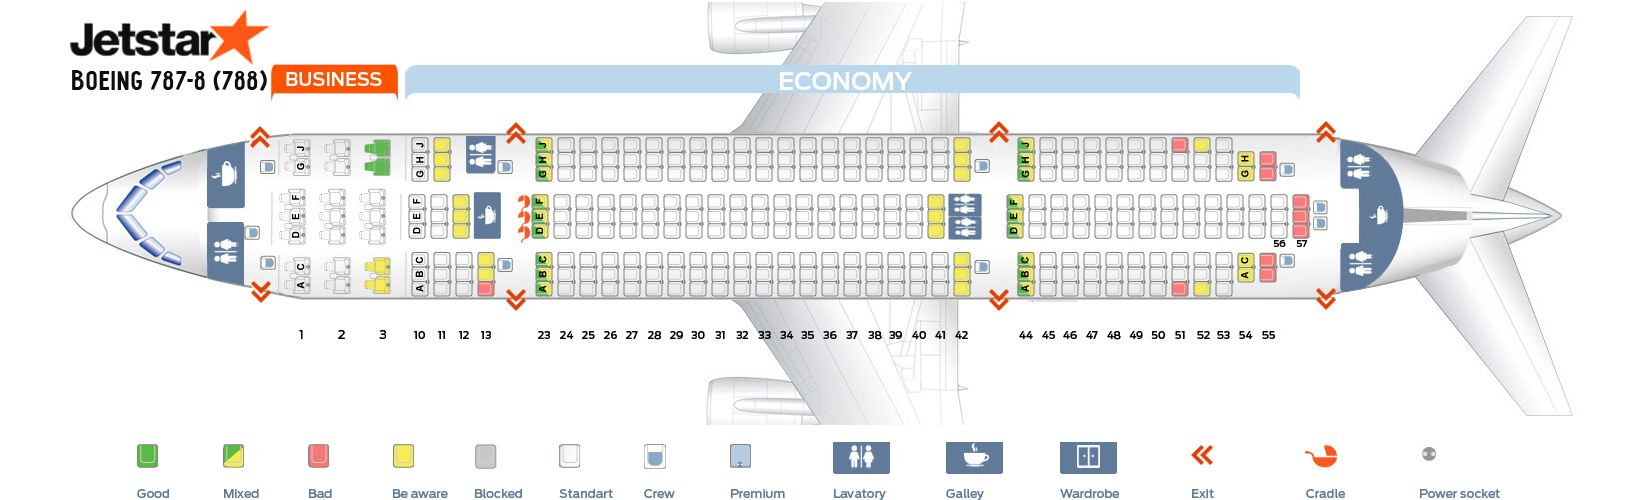 Southwest Airlines Airplane Seating Chart Di 2020